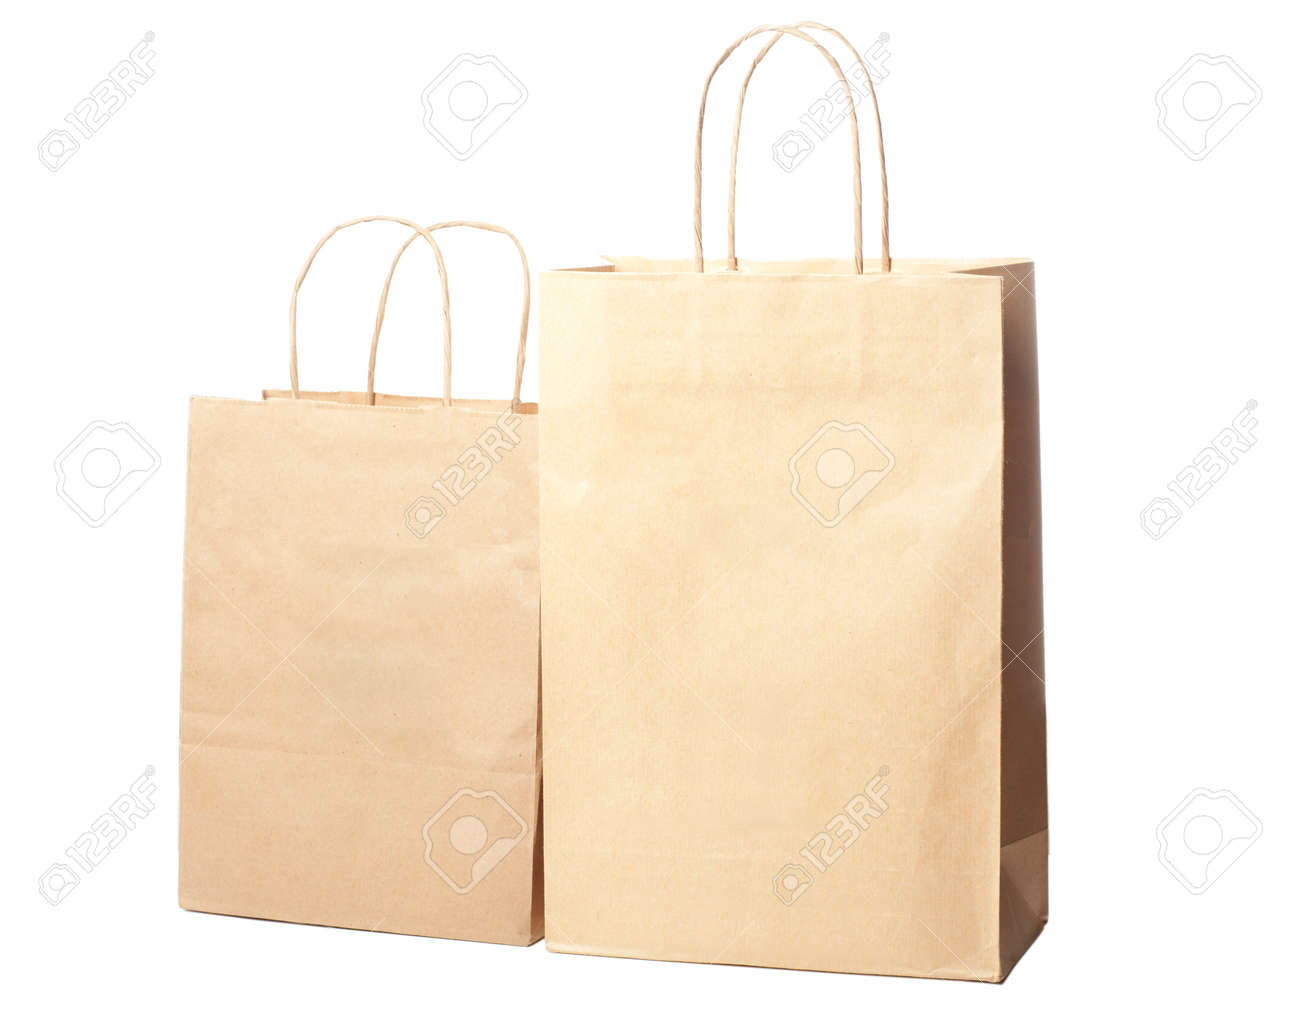 Two paper bags isolated over white background Stock Photo - 13207358